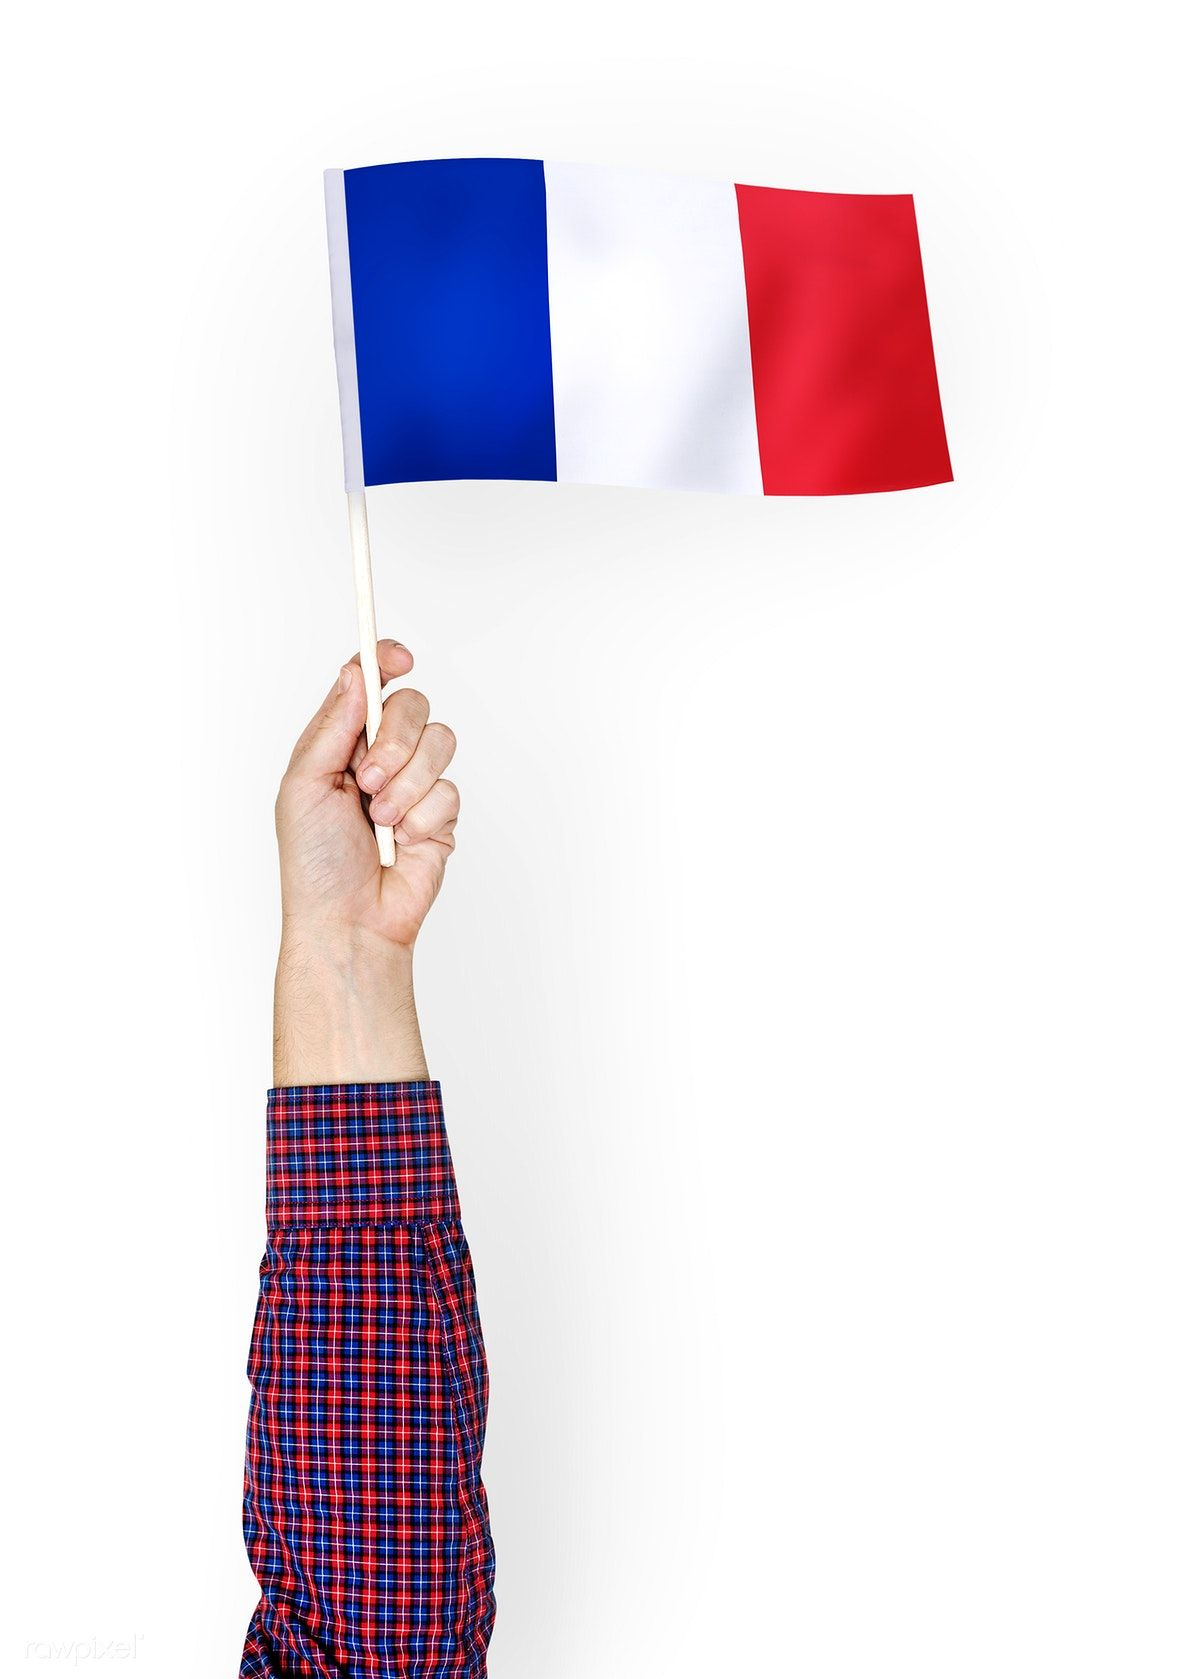 Download Premium Psd Of Person Waving The Flag Of French Republic 422543 French Flag Flags Of The World Free Images